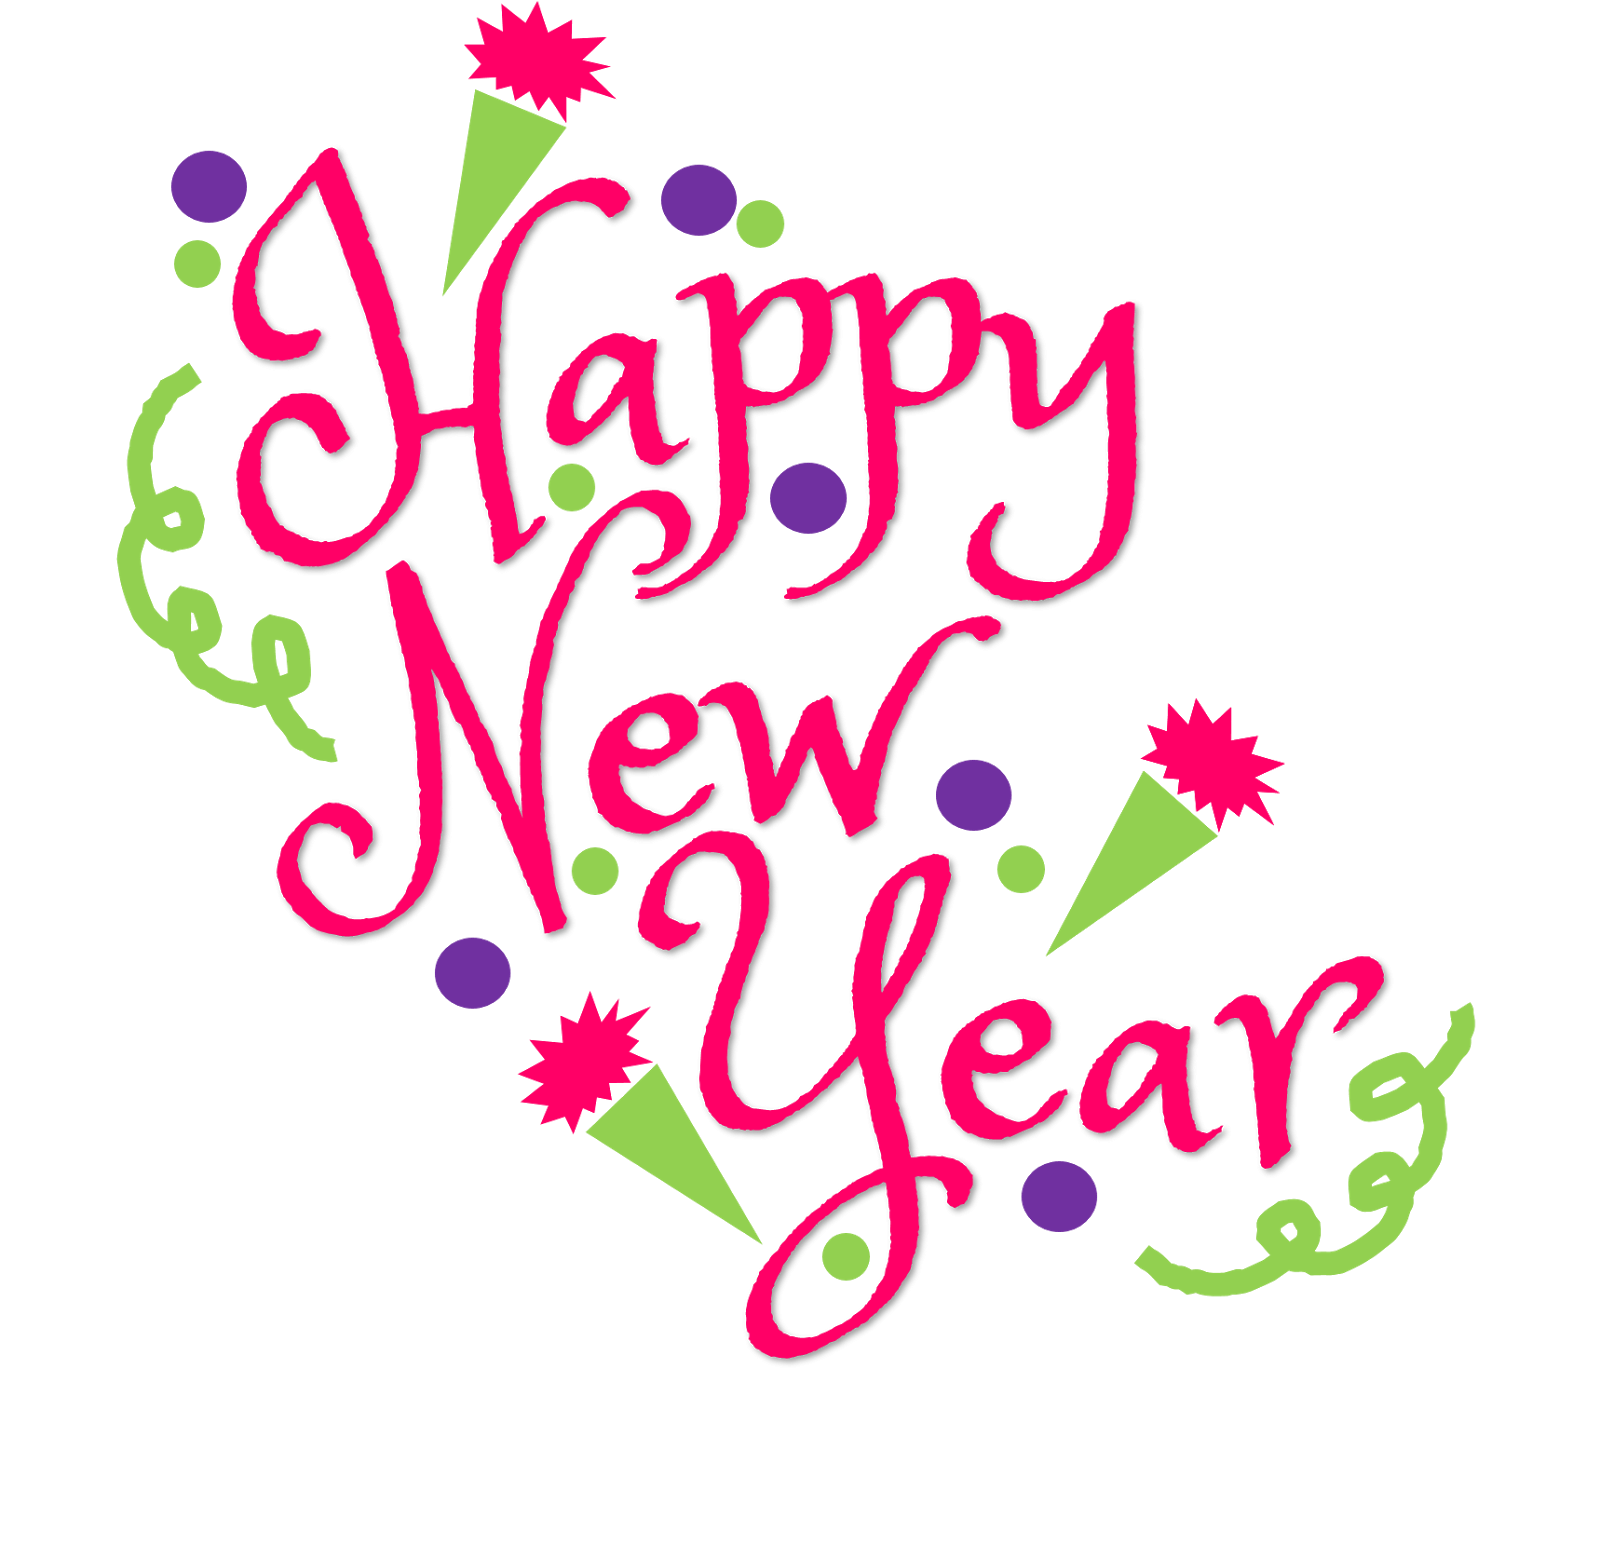 Happy New Year Clipart 2019 For Download Free.